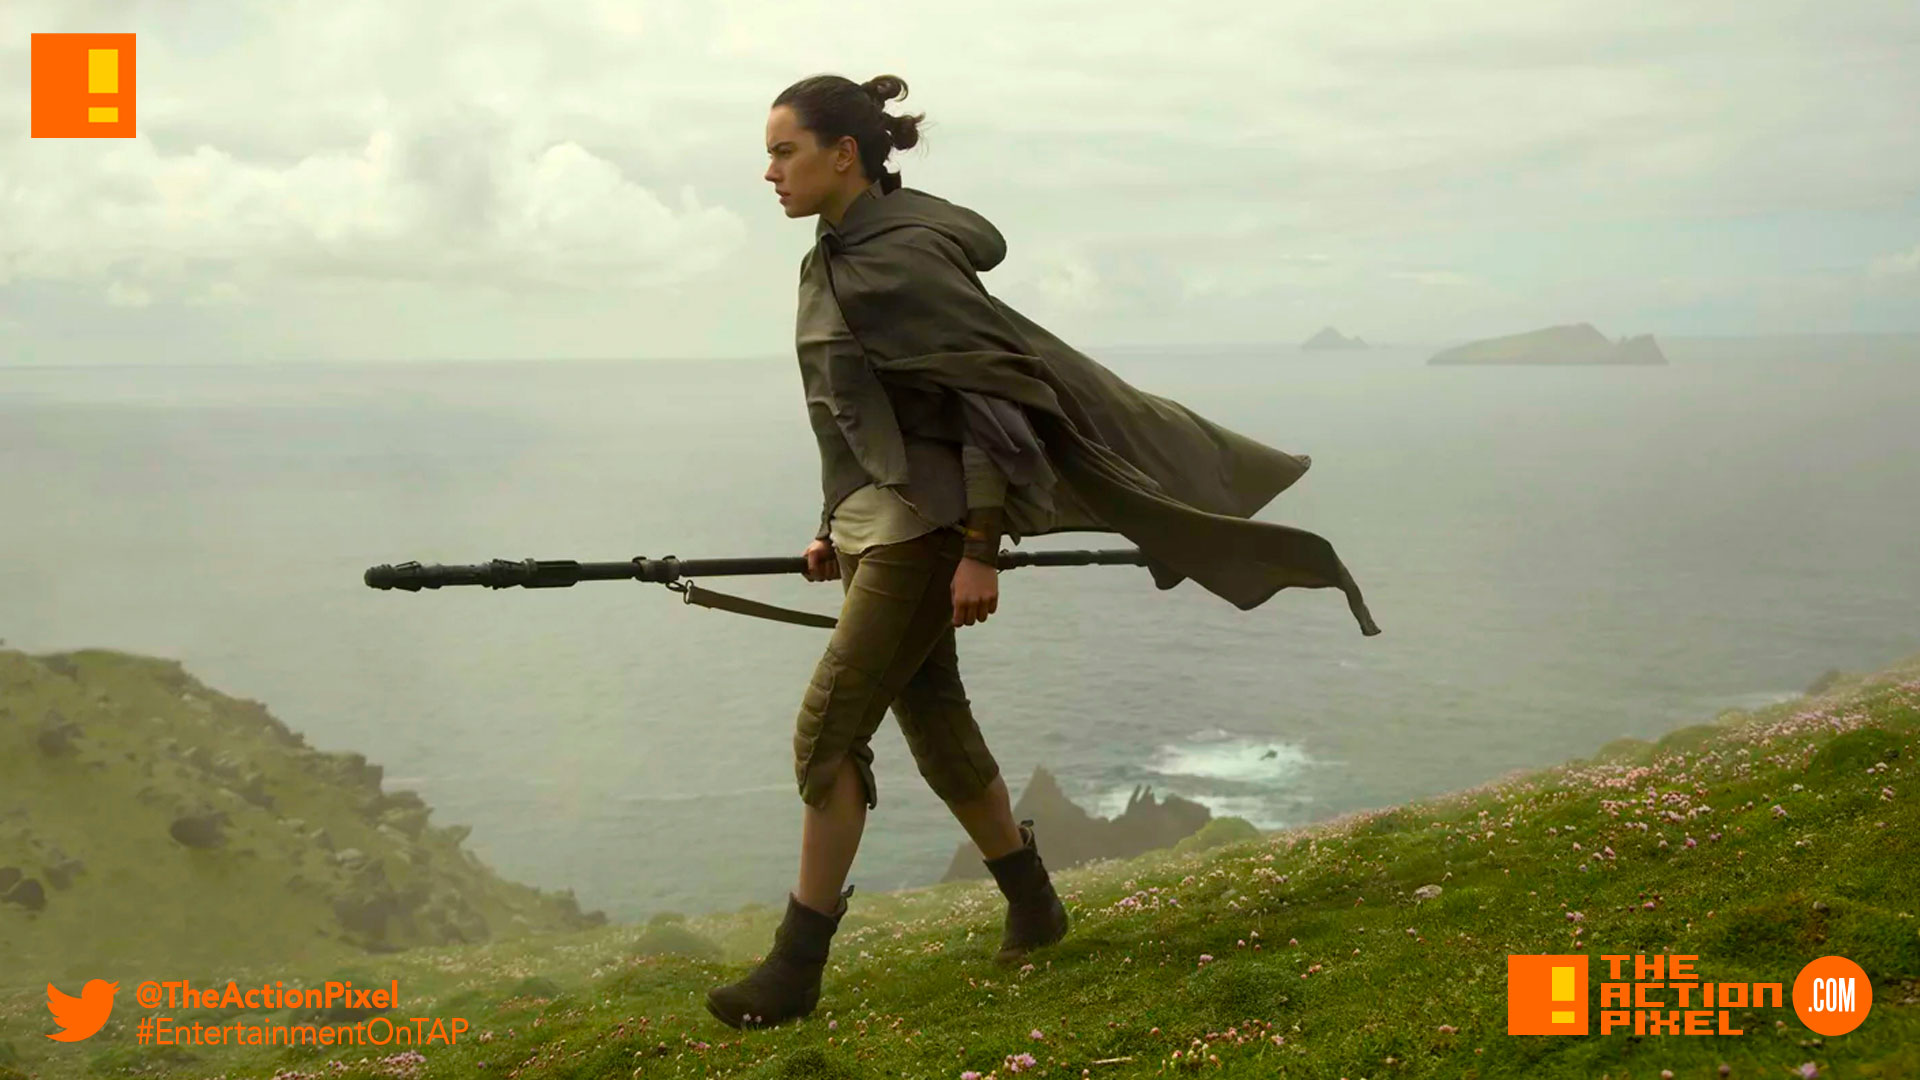 the last jedi, star wars, star wars: the last jedi, mark hamill, luke skywalker, princess leia,carrie fisher, rey,the action pixel, entertainment on tap,kylo ren, photographs,image,